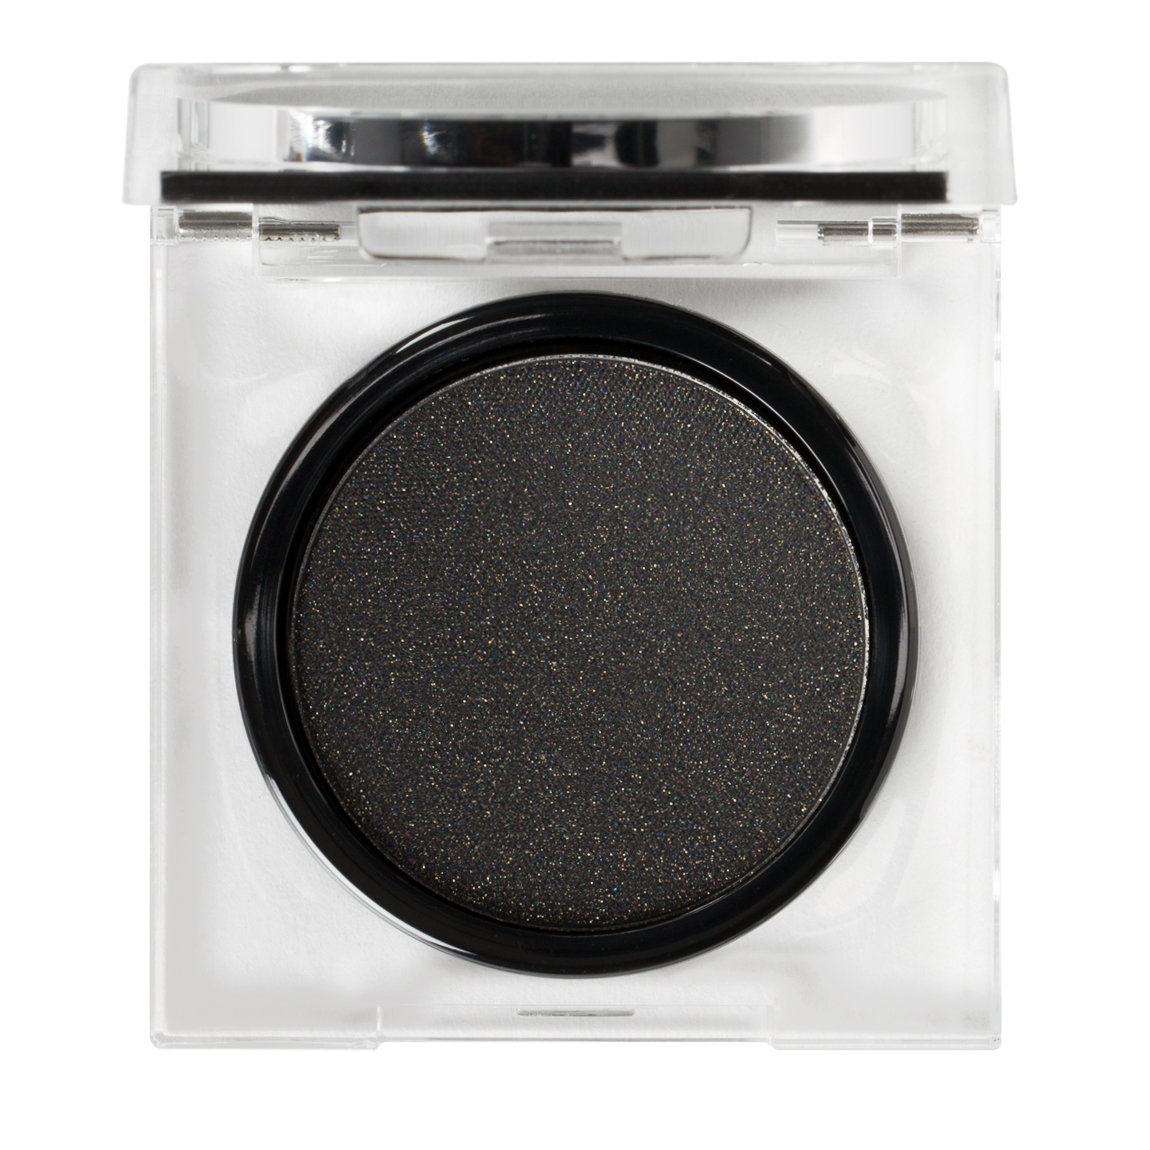 Natasha Denona Blackest Black Eyeshadow Gold Rush alternative view 1 - product swatch.